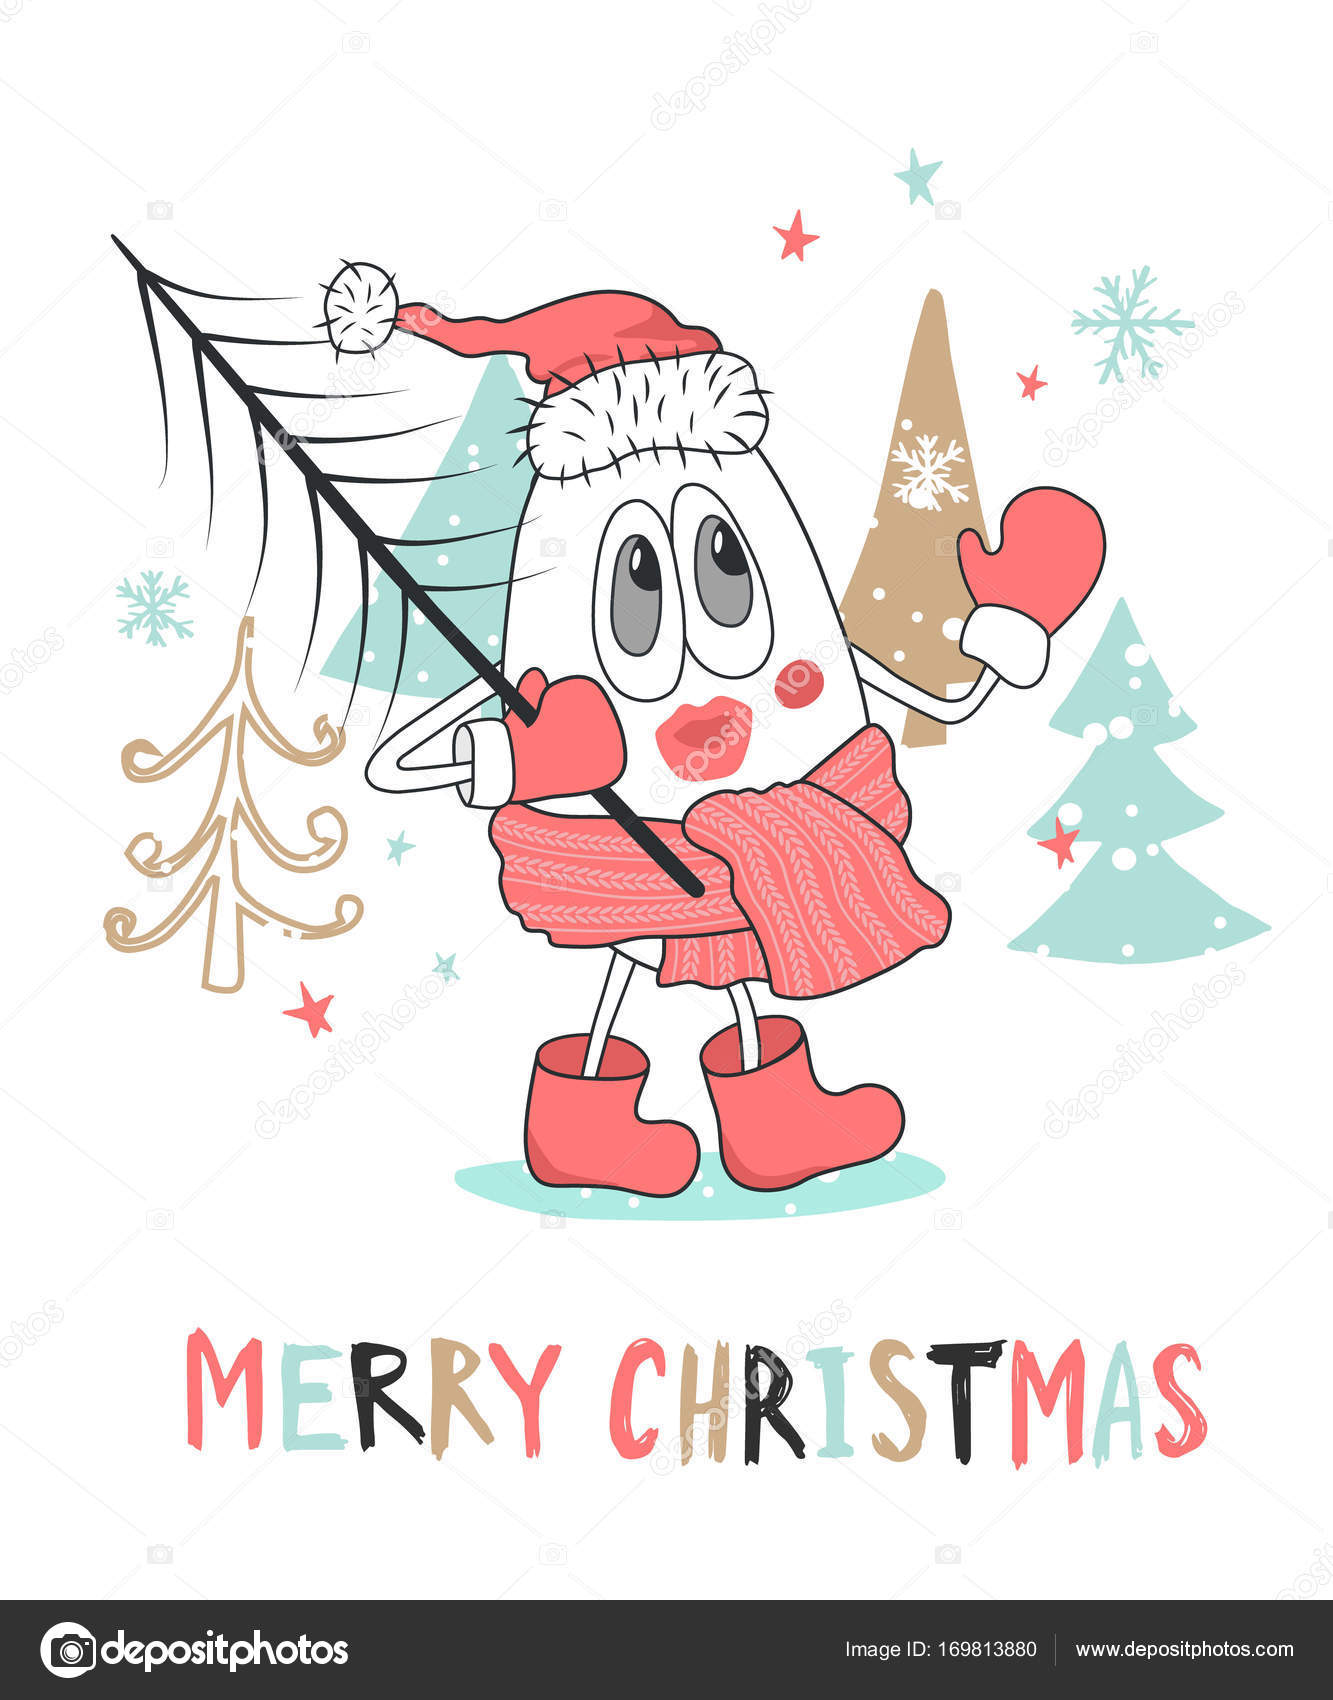 Cute Christmas Greeting Card With Snowman Ctor Illustration